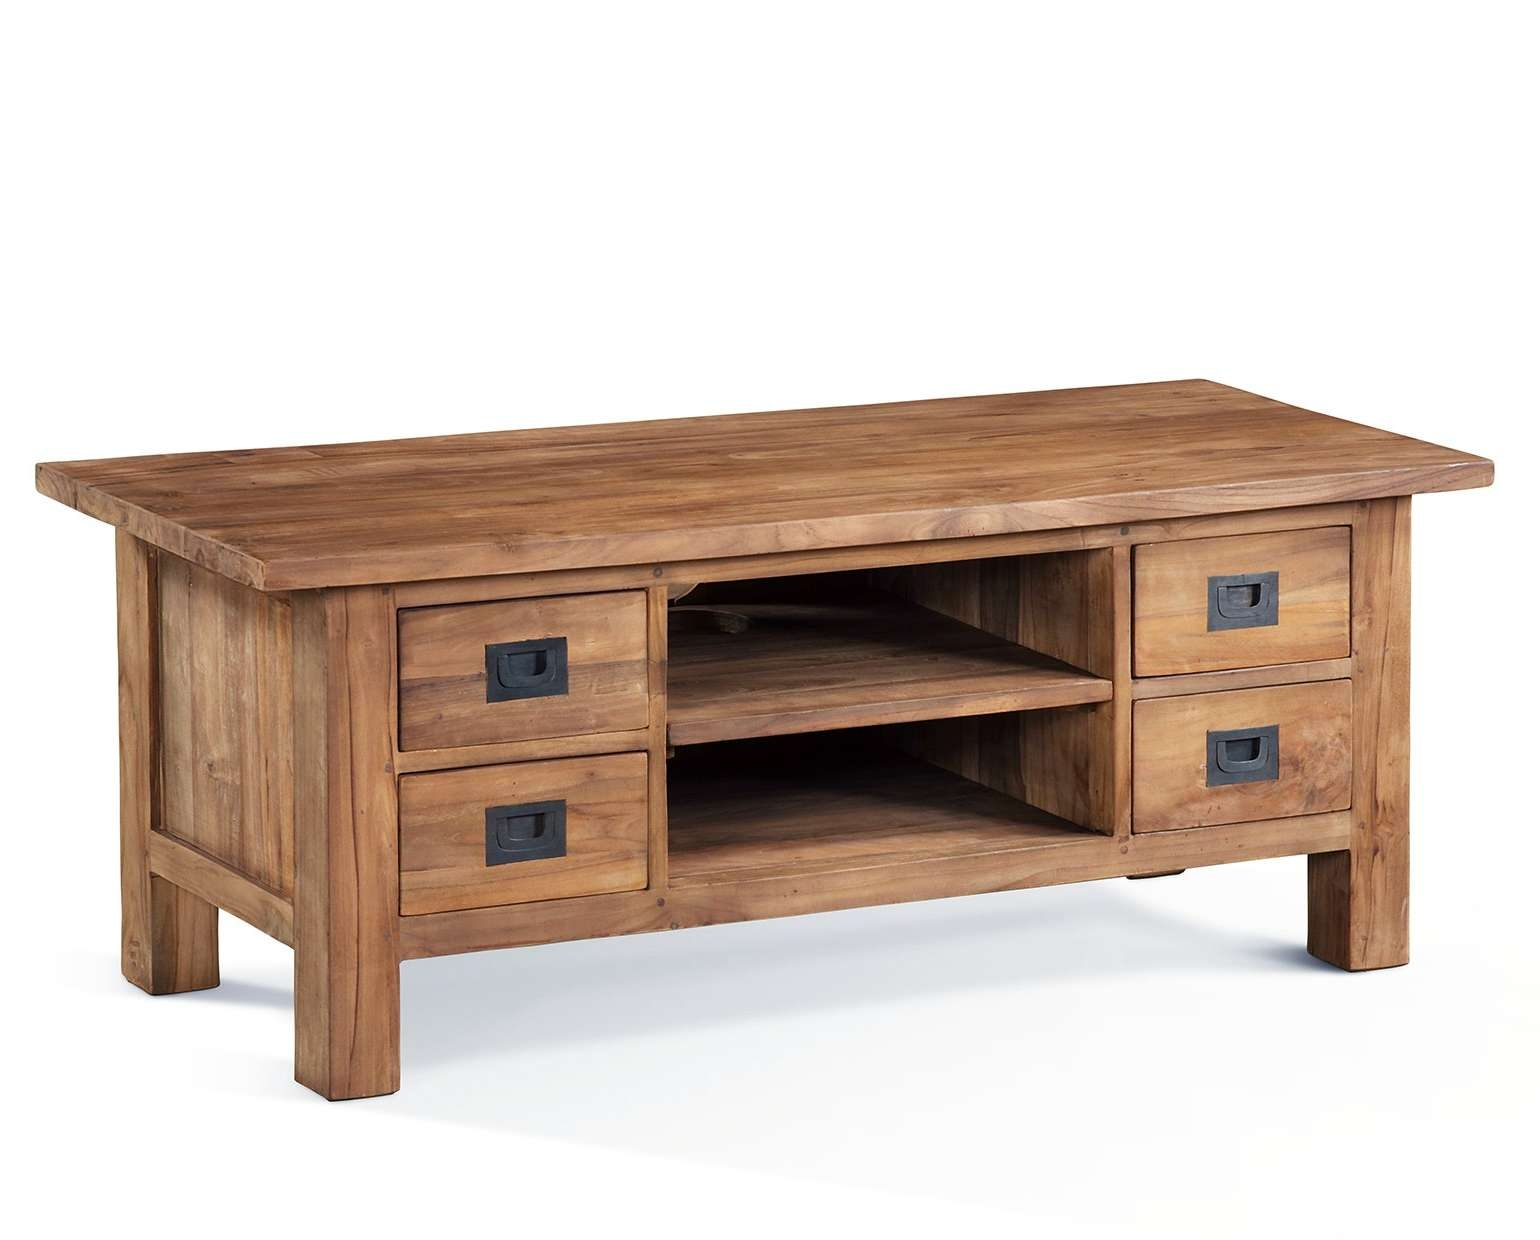 Lifestyle Long Low Tv Cabinet – Raft Furniture, London Intended For Long Low Tv Cabinets (View 8 of 20)